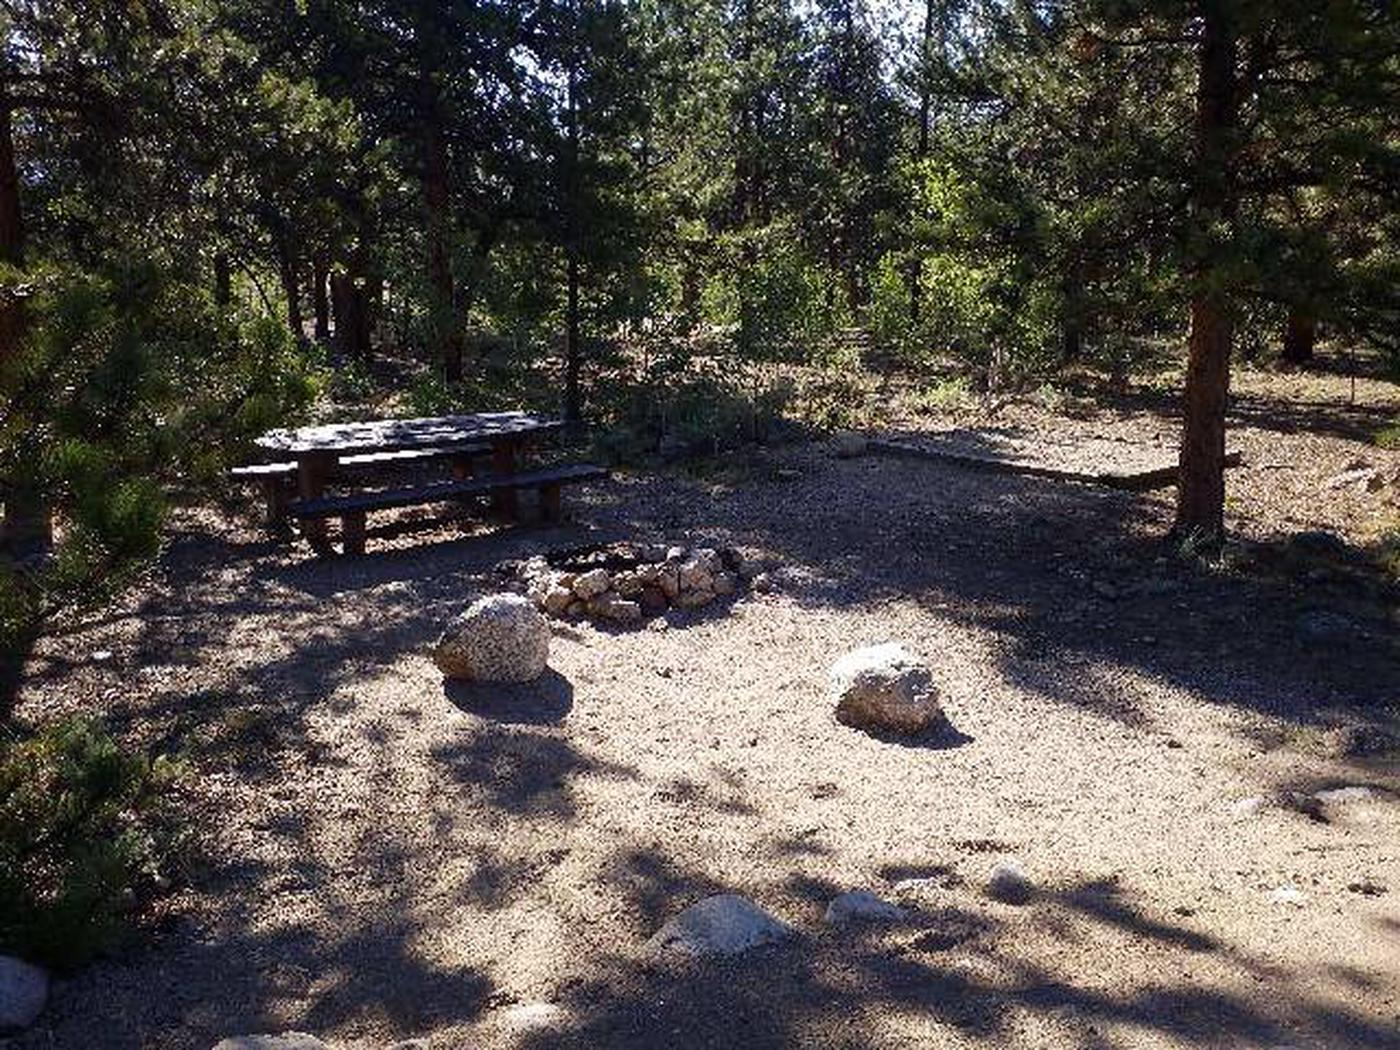 White Star Campground, site 62 picnic table and fire ring